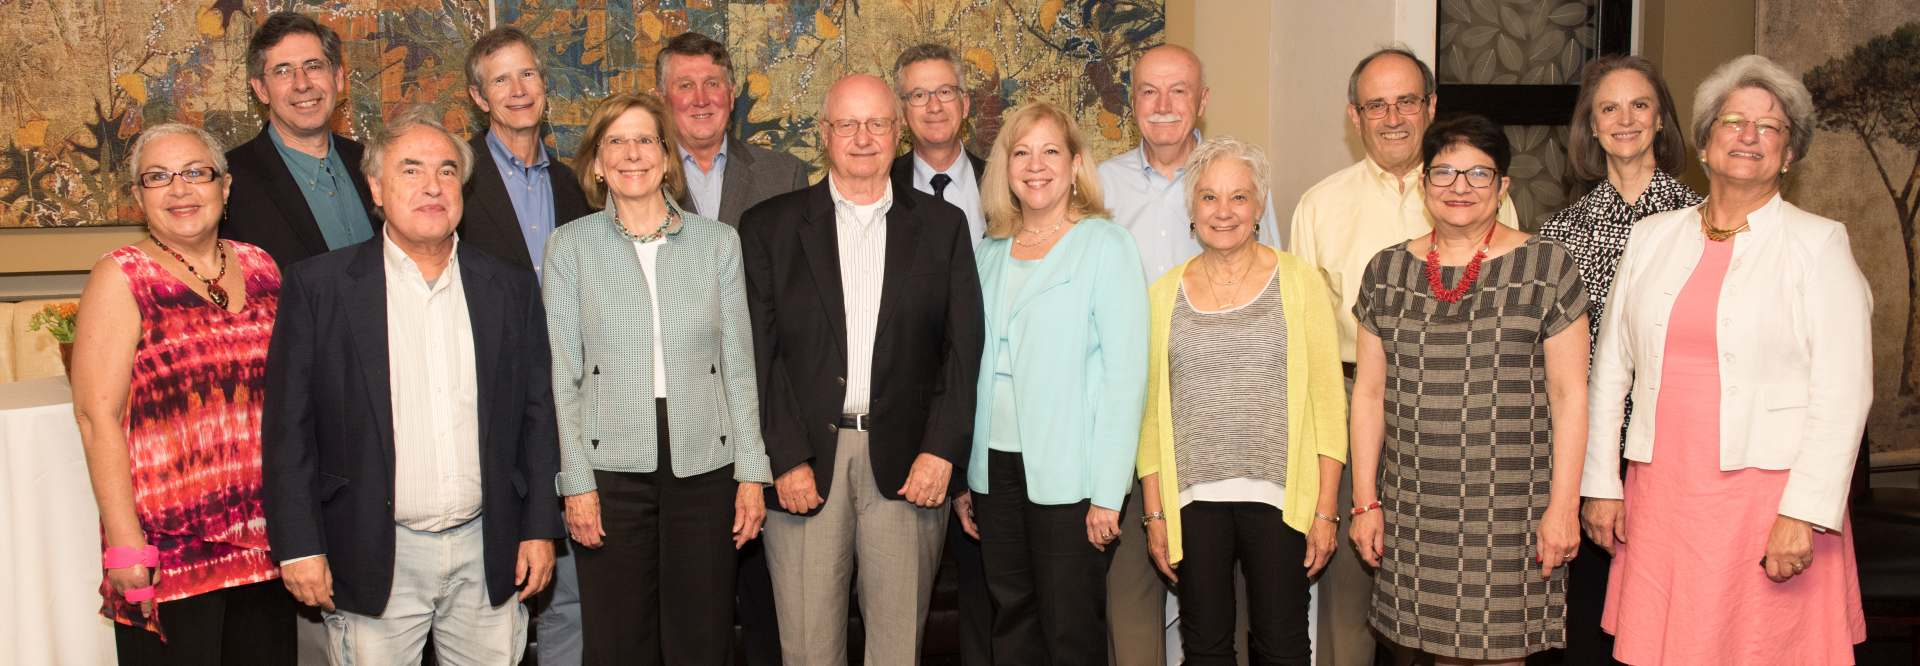 Members of the GW Law Class of 1977 during their 40th year reunion